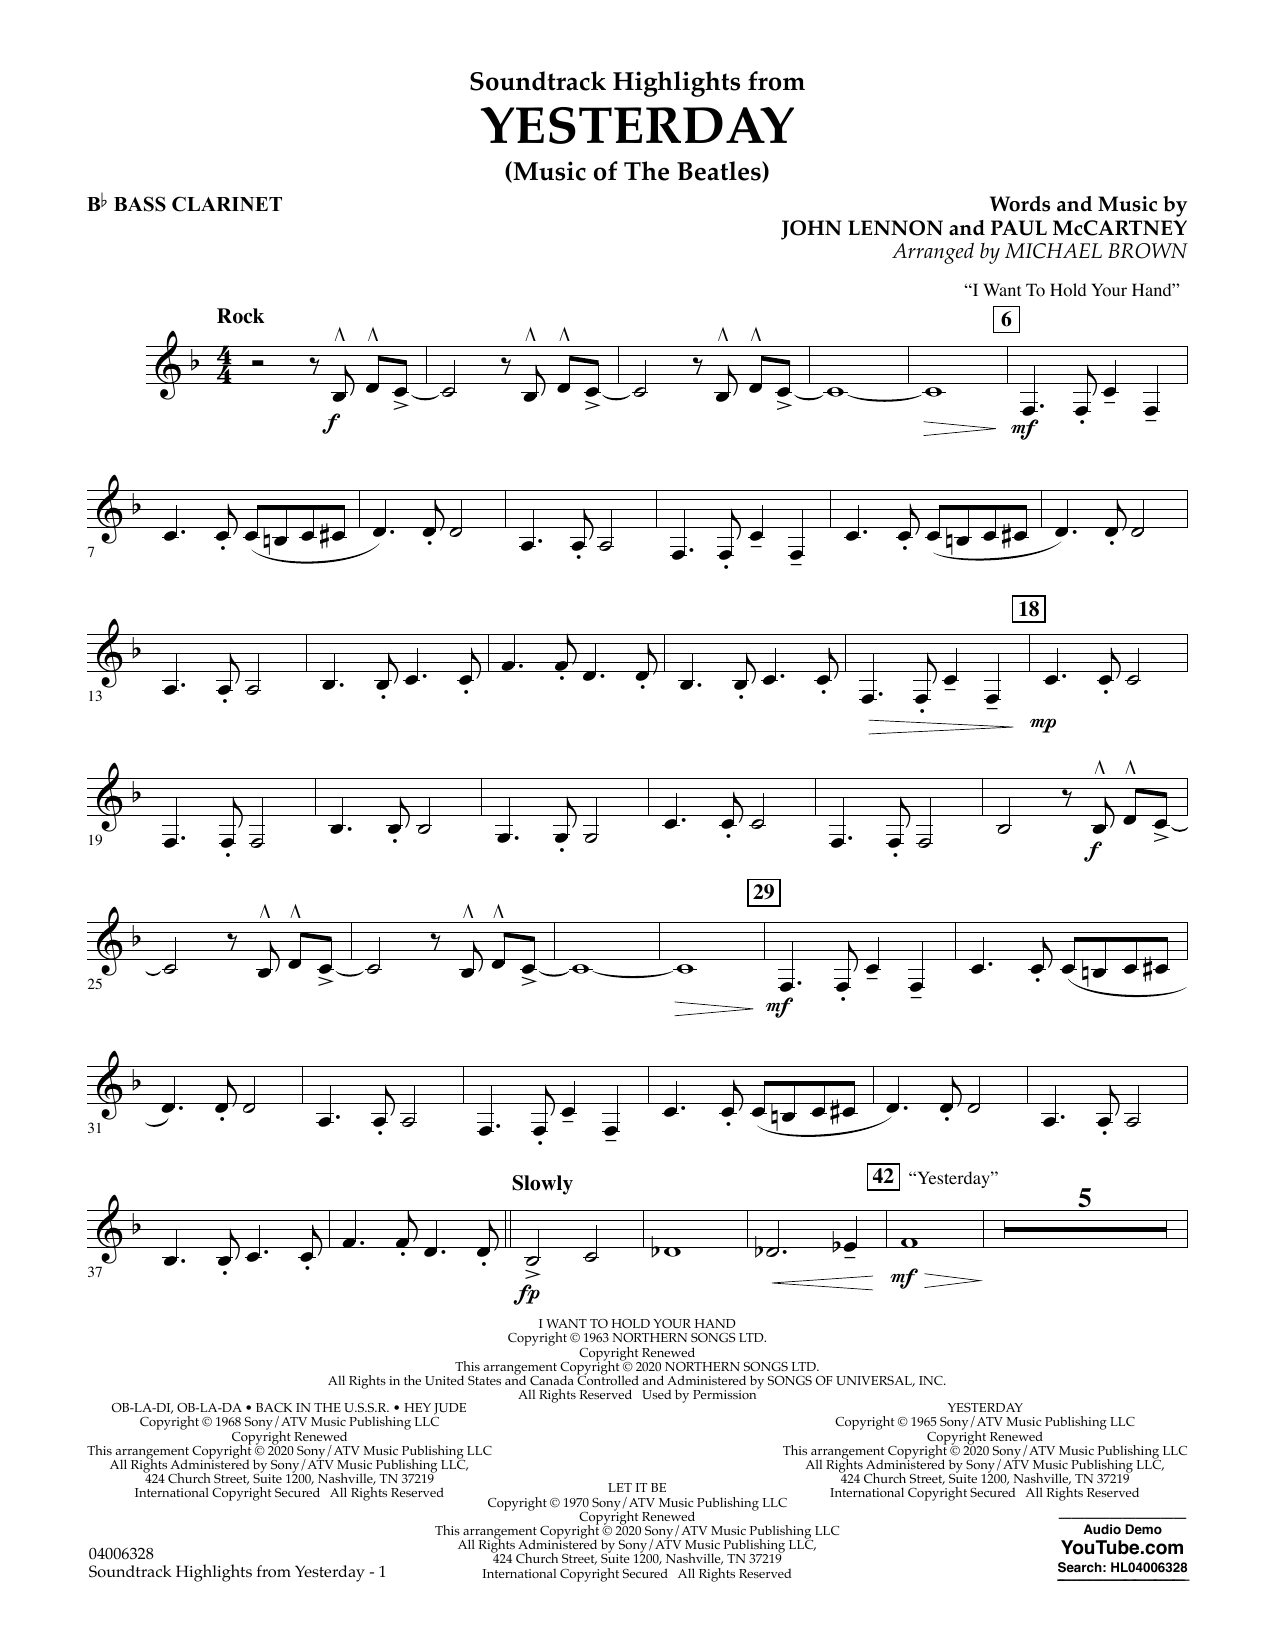 The Beatles Highlights from Yesterday (Music Of The Beatles) (arr. Michael Brown) - Bb Bass Clarinet sheet music notes and chords. Download Printable PDF.